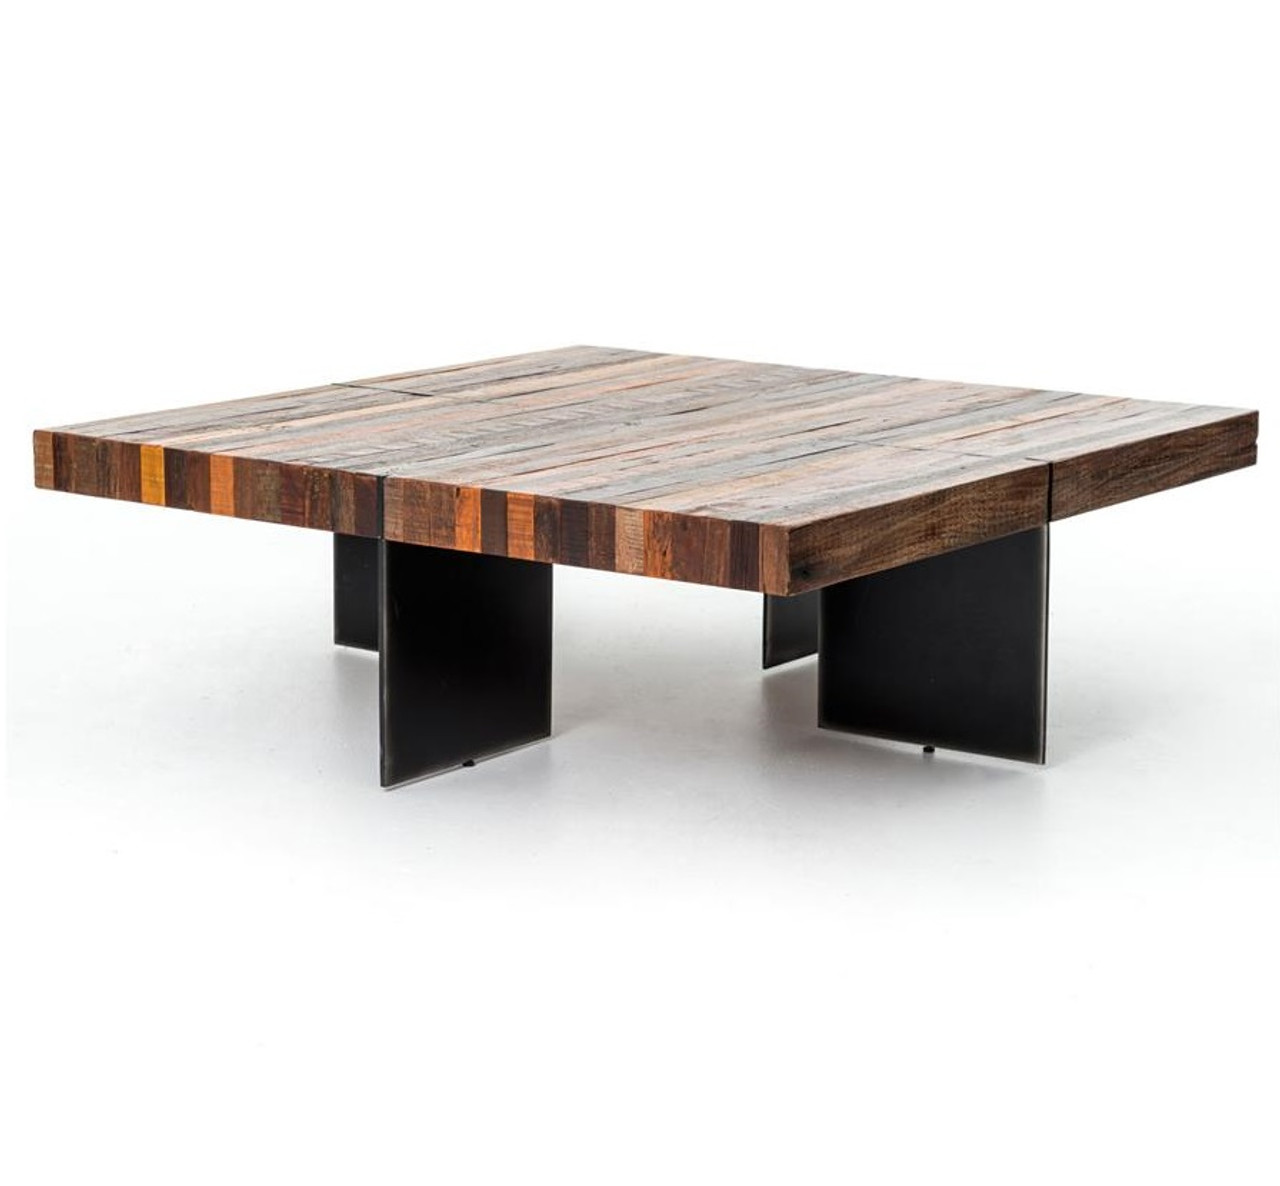 Alec Industrial   Rustic Square Coffee Table. Rustic Reclaimed Wood Coffee Tables   Modern Wood Coffee Table